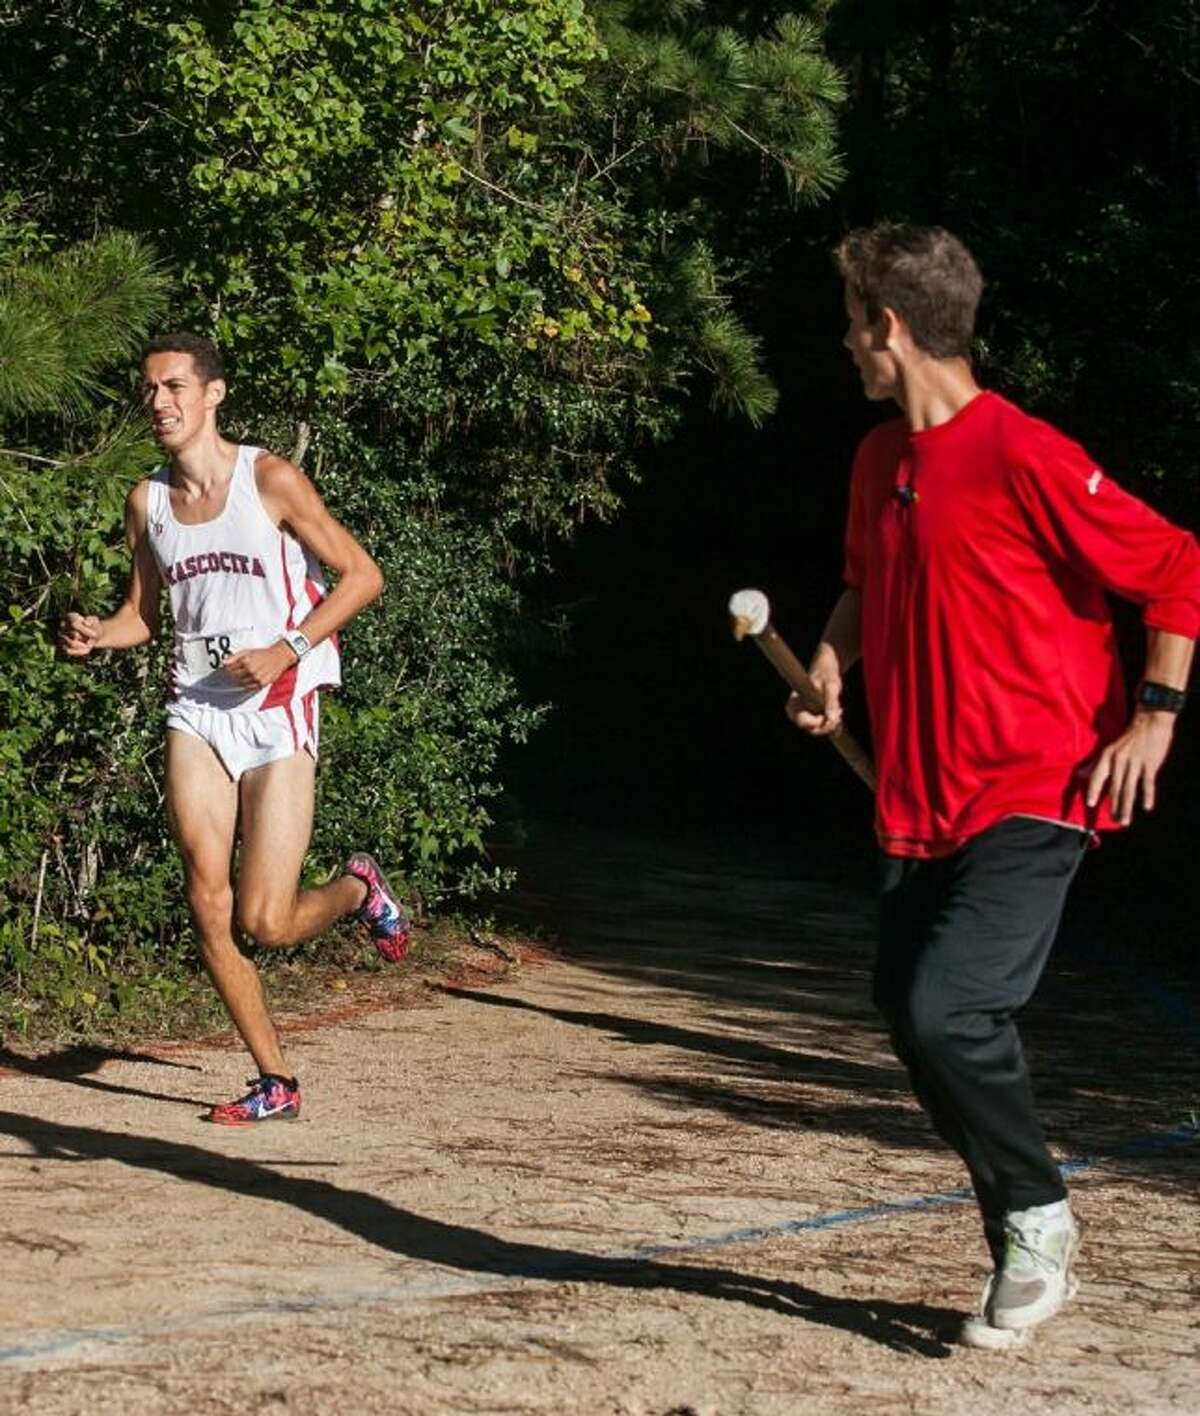 Atascocita's Andres Ezpinosa finished first with a time of 16 minutes, 7.53 seconds at the District 13-5A cross country meet at Atascocita High School on Wednesday.